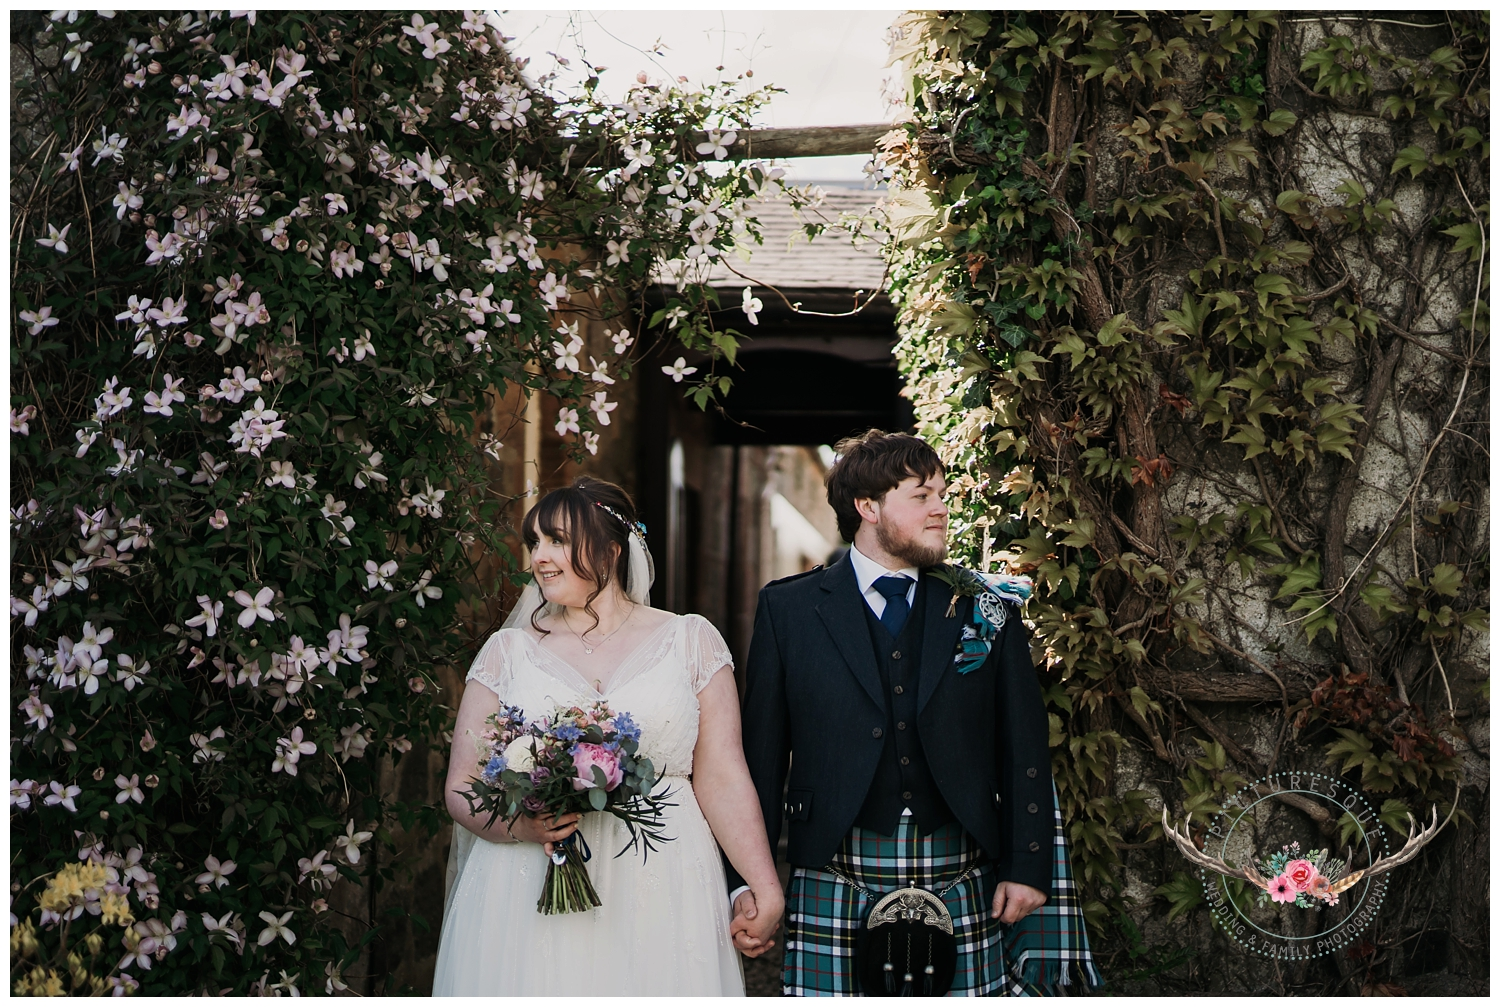 The Barn at Dalduff Farm, Picturesque, WeddingPhotography, Scotland_0035.jpg